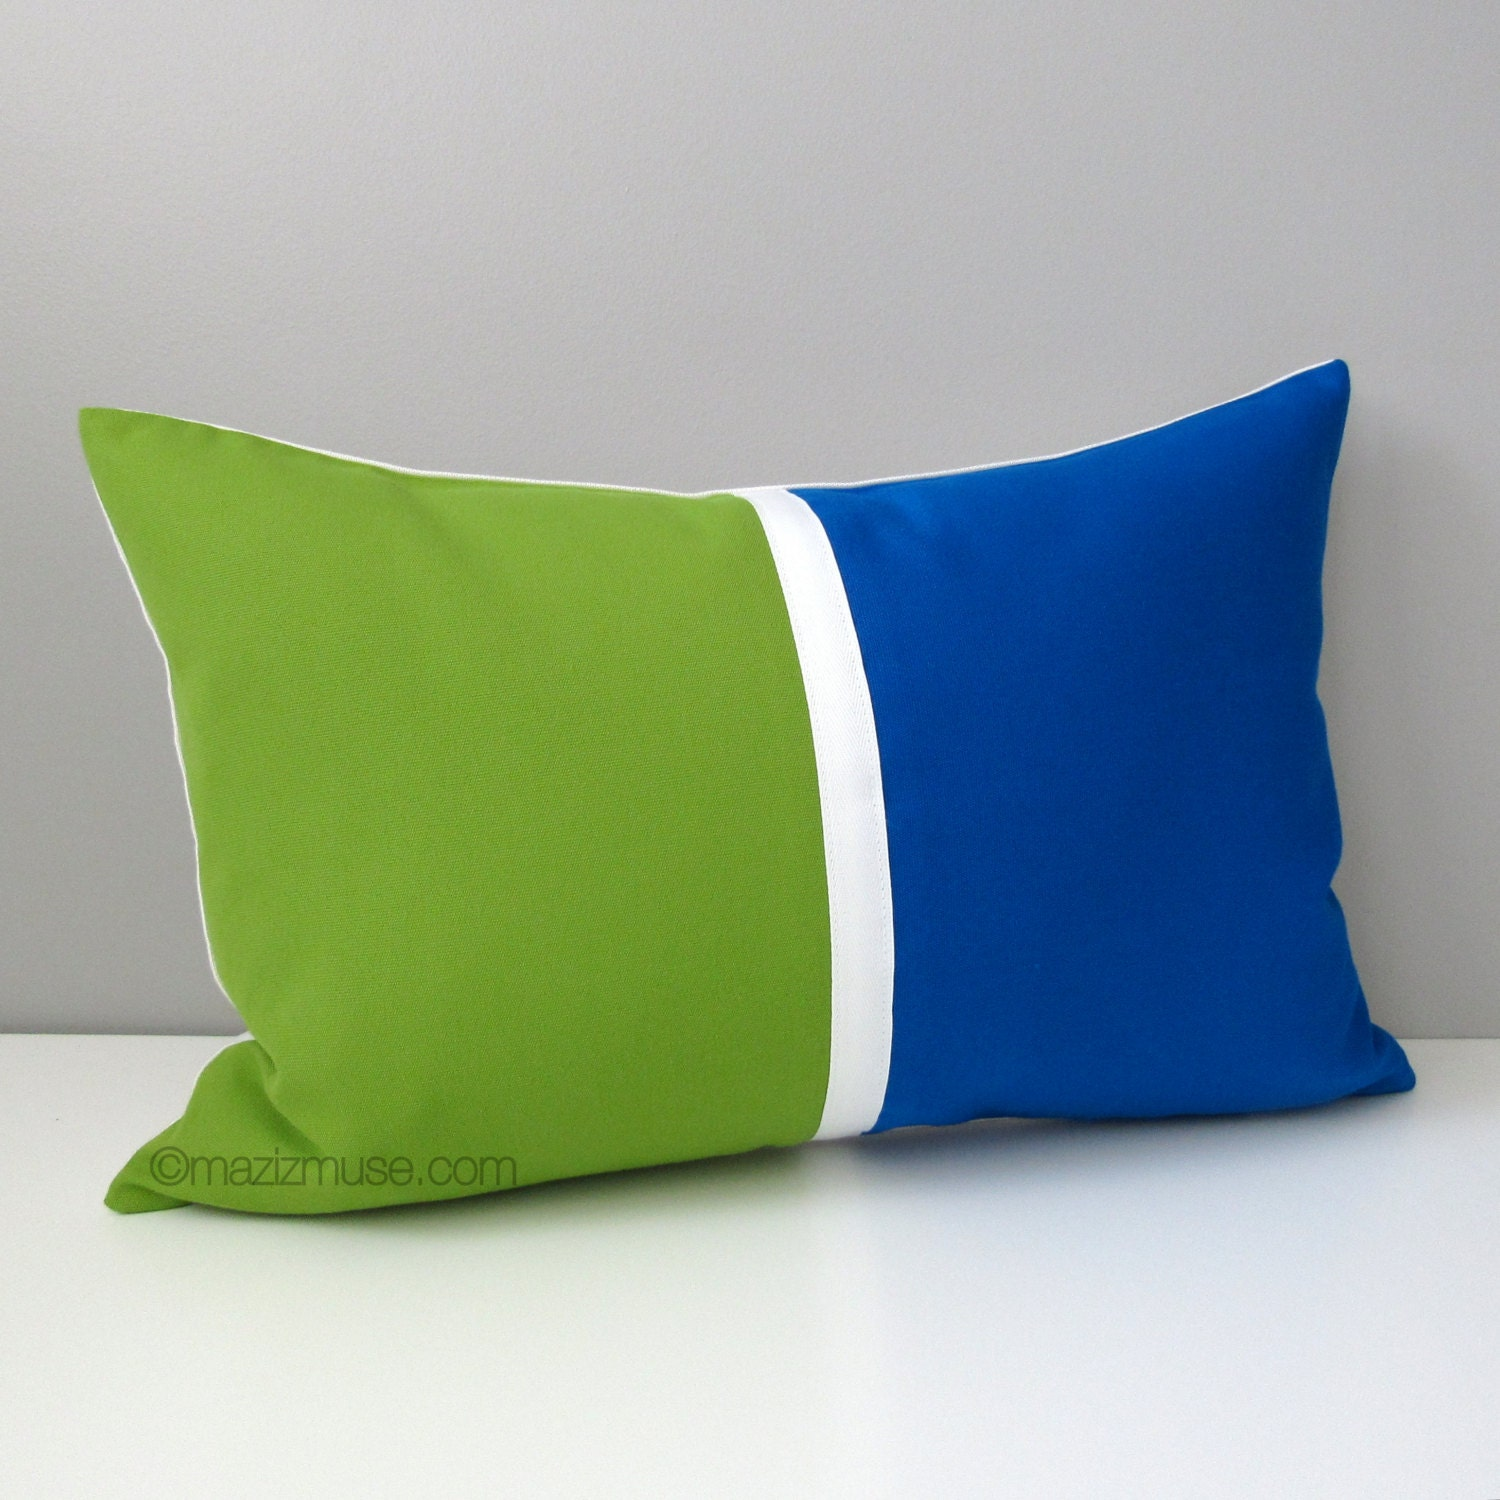 Lime Green And Blue Throw Pillows : Decorative Pillow Cover Cobalt Blue & Lime Green Outdoor